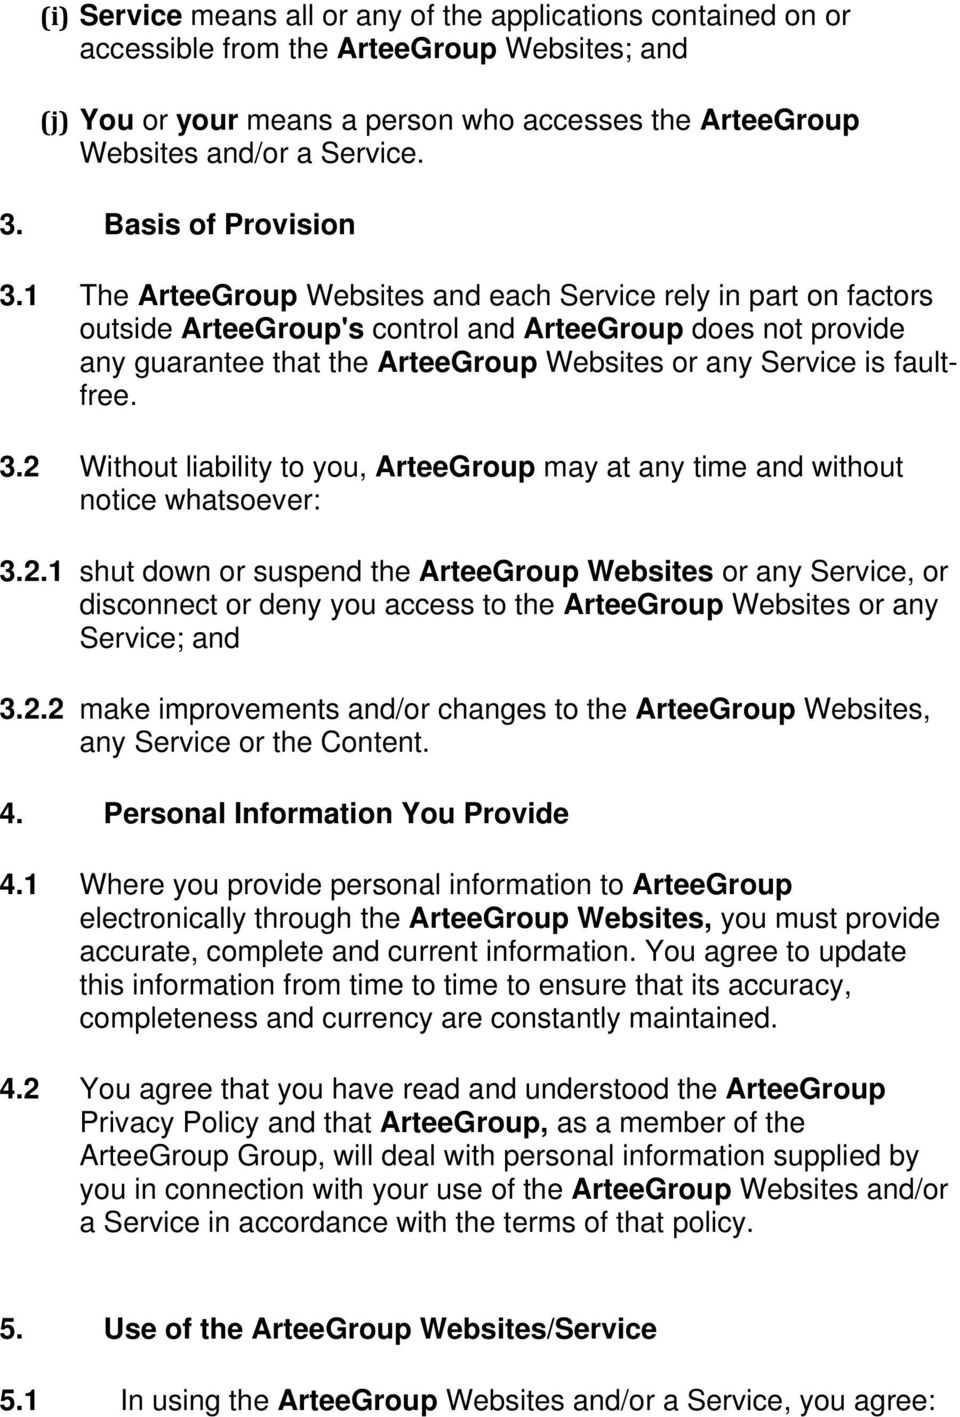 1 The ArteeGroup Websites and each Service rely in part on factors outside ArteeGroup's control and ArteeGroup does not provide any guarantee that the ArteeGroup Websites or any Service is faultfree.